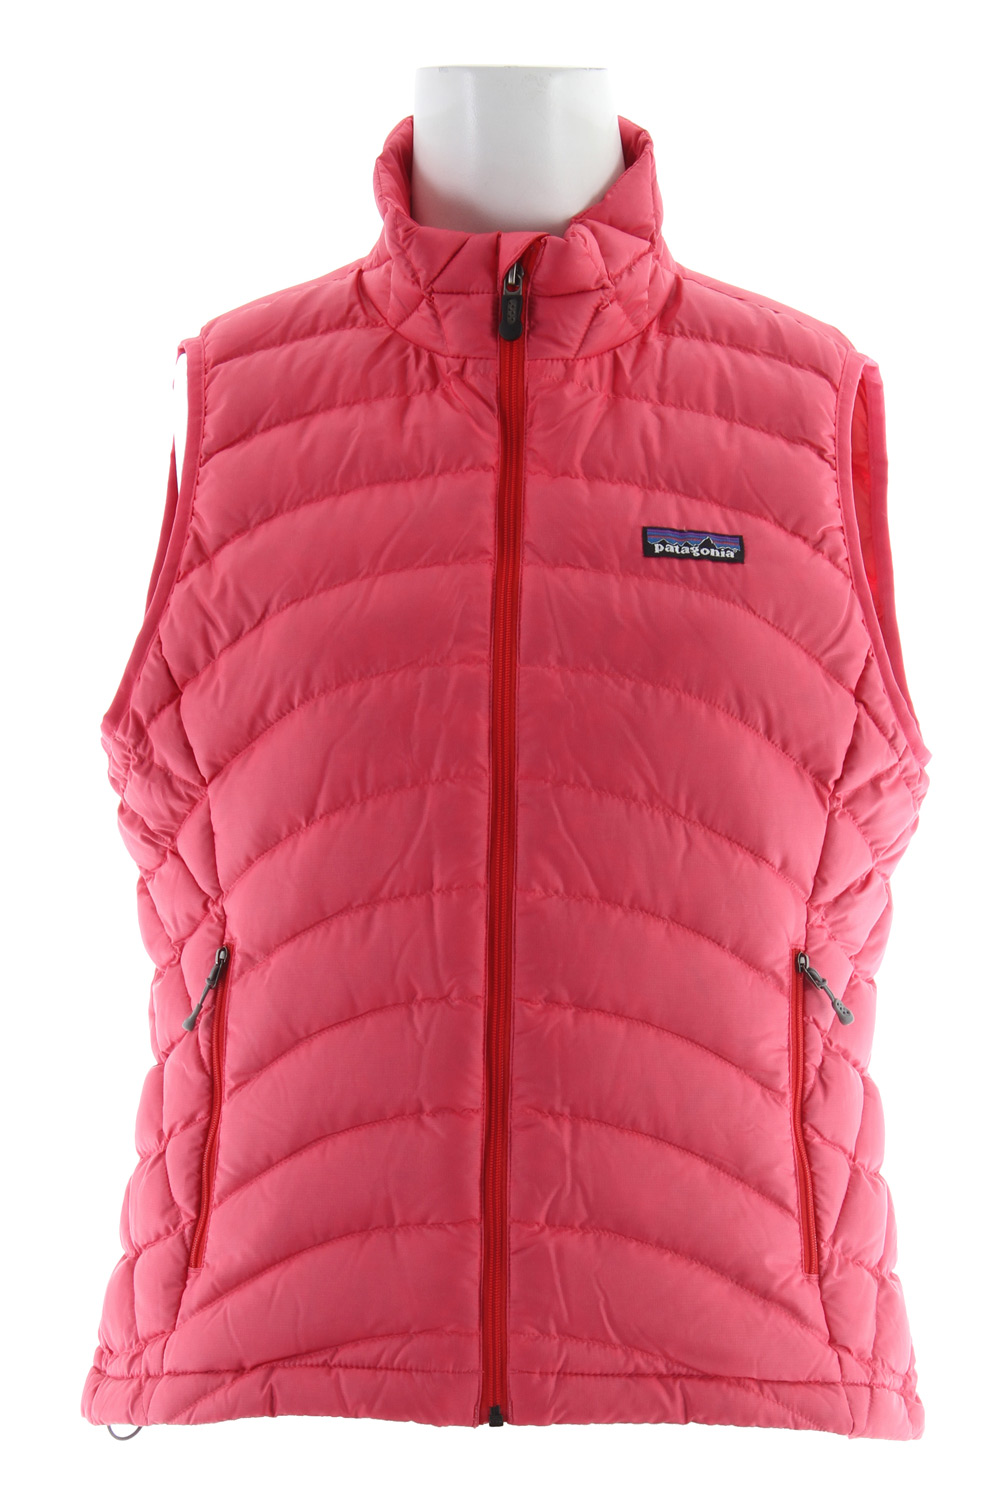 Simple, lightweight core warmth. This vest's minimalist design practically floats, its 800-fill-power down traps heat in alpine conditions, and it's so compact it stuffs into a stretch-mesh internal pocket (with a carabiner clip-in loop). The innovative 100% recycled polyester shell with a Deluge DWR (durable water repellent) finish provides wind and water protection as well as a high tear-strength; quilting stabilizes the down. With zippered handwarmer pockets and a drawcord hem. Recyclable through the Common Threads Recycling Program.Key Features of the Patagonia Down Sweater Vest: Superlight, windproof shell has high tear-strength and is treated with a Deluge DWR (durable water repellent) finish Quilted construction stabilizes the 800-fill-power premium European goose down Pockets: two zippered handwarmers, one zippered stretch-mesh, which doubles as a stuff sack and has a carabiner clip-in loop Elastic binding at armholes Drawcord hem Shell and lining: 1.4-oz 22-denier 100% recycled polyester with a Deluge DWR (durable water repellent) finish. Insulation: 800-fill-power premium European goose down. Recyclable through the Common Threads Recycling Program 235 g (8.3 oz) Made in China. Recycled Polyester: We recycle used soda bottles, unusable second quality fabrics and worn out garments into polyester fibers to produce many of our clothes. Deluge DWR: Patagonia's proprietary durable water repellent fabric finish, Deluge DWR, lasts substantially longer than standard DWRs. Garments with the Deluge DWR finish have like-new repellency after years of extensive use. - $112.95